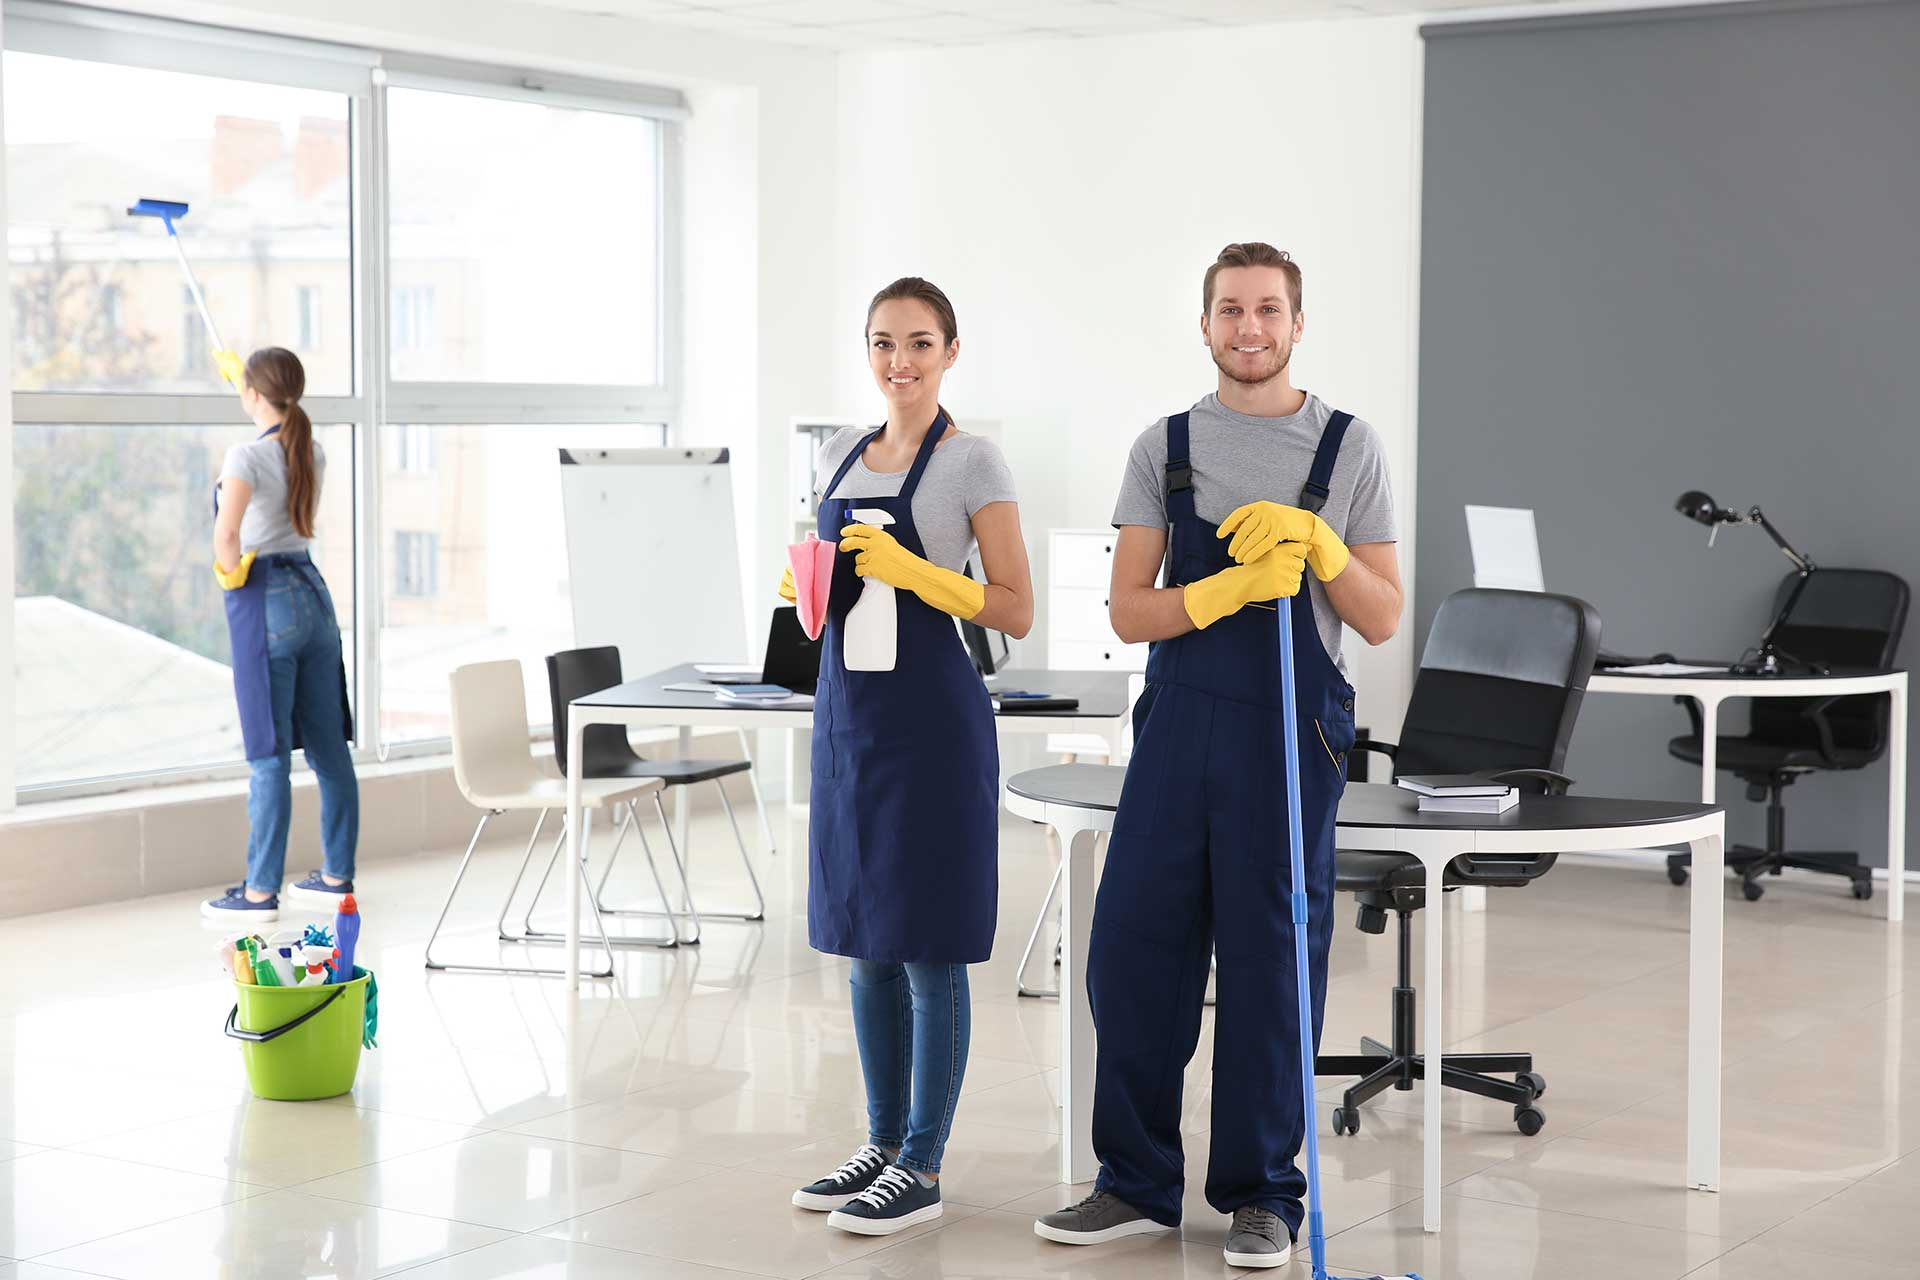 A picture of two women and one man cleaning an office